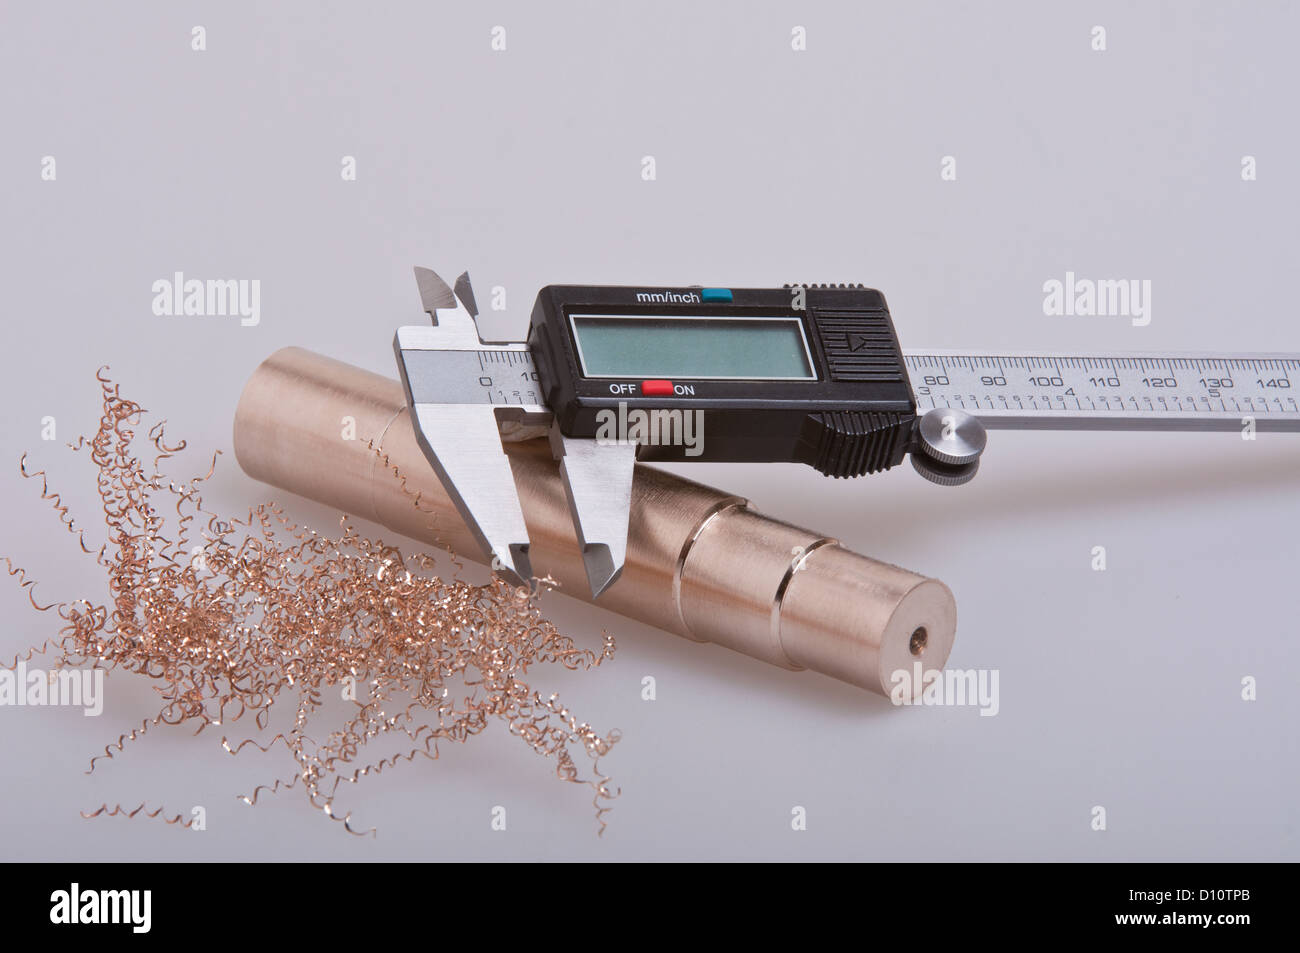 A pair of digital calipers / veriners used for measuring,  resting on a spigot of  bronze with some bronze swarf - Stock Image